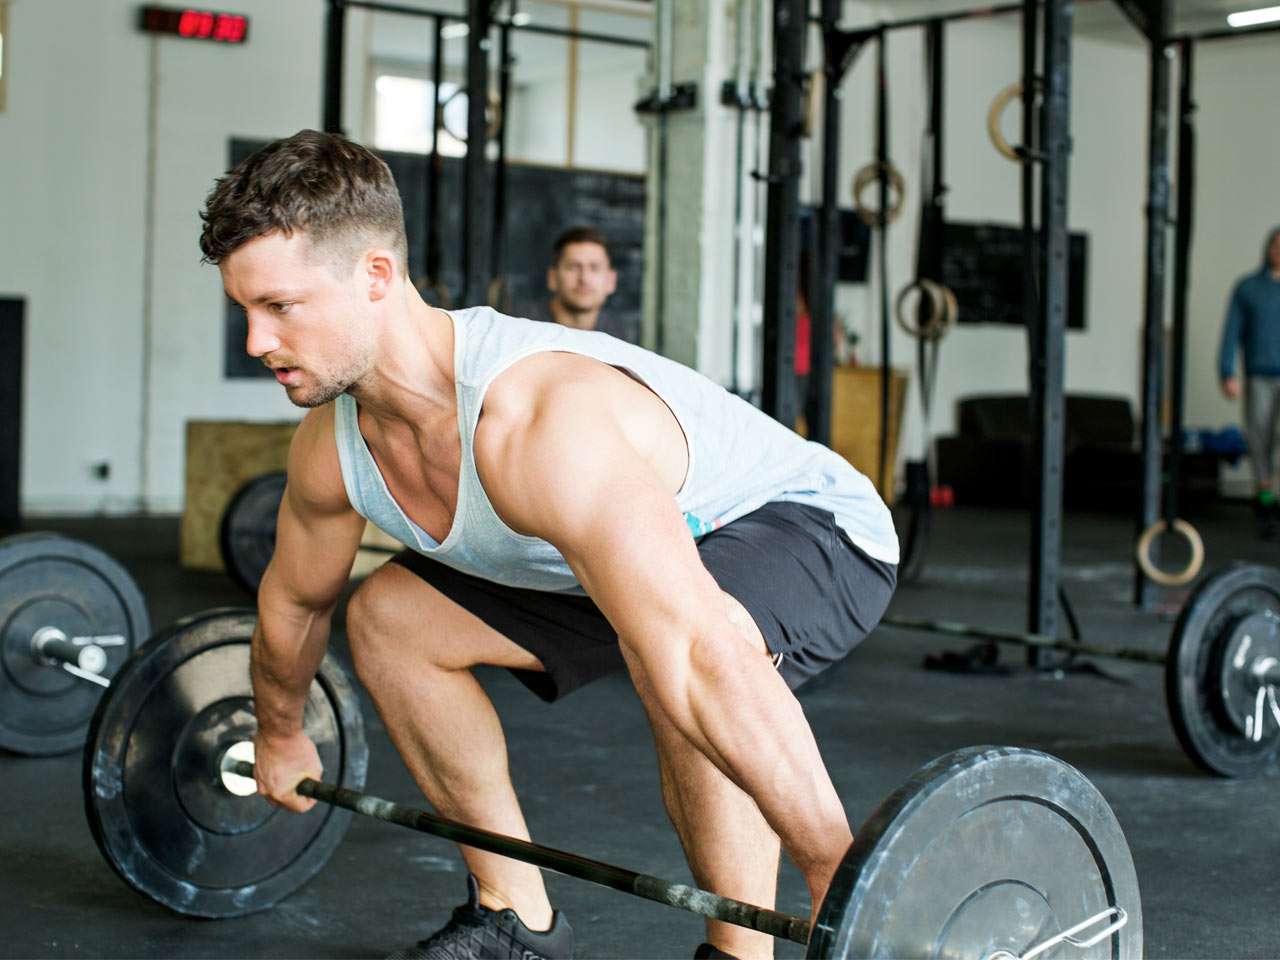 The Trophy Muscle Workout: Pump up your legs, shoulders, and abs on day 1